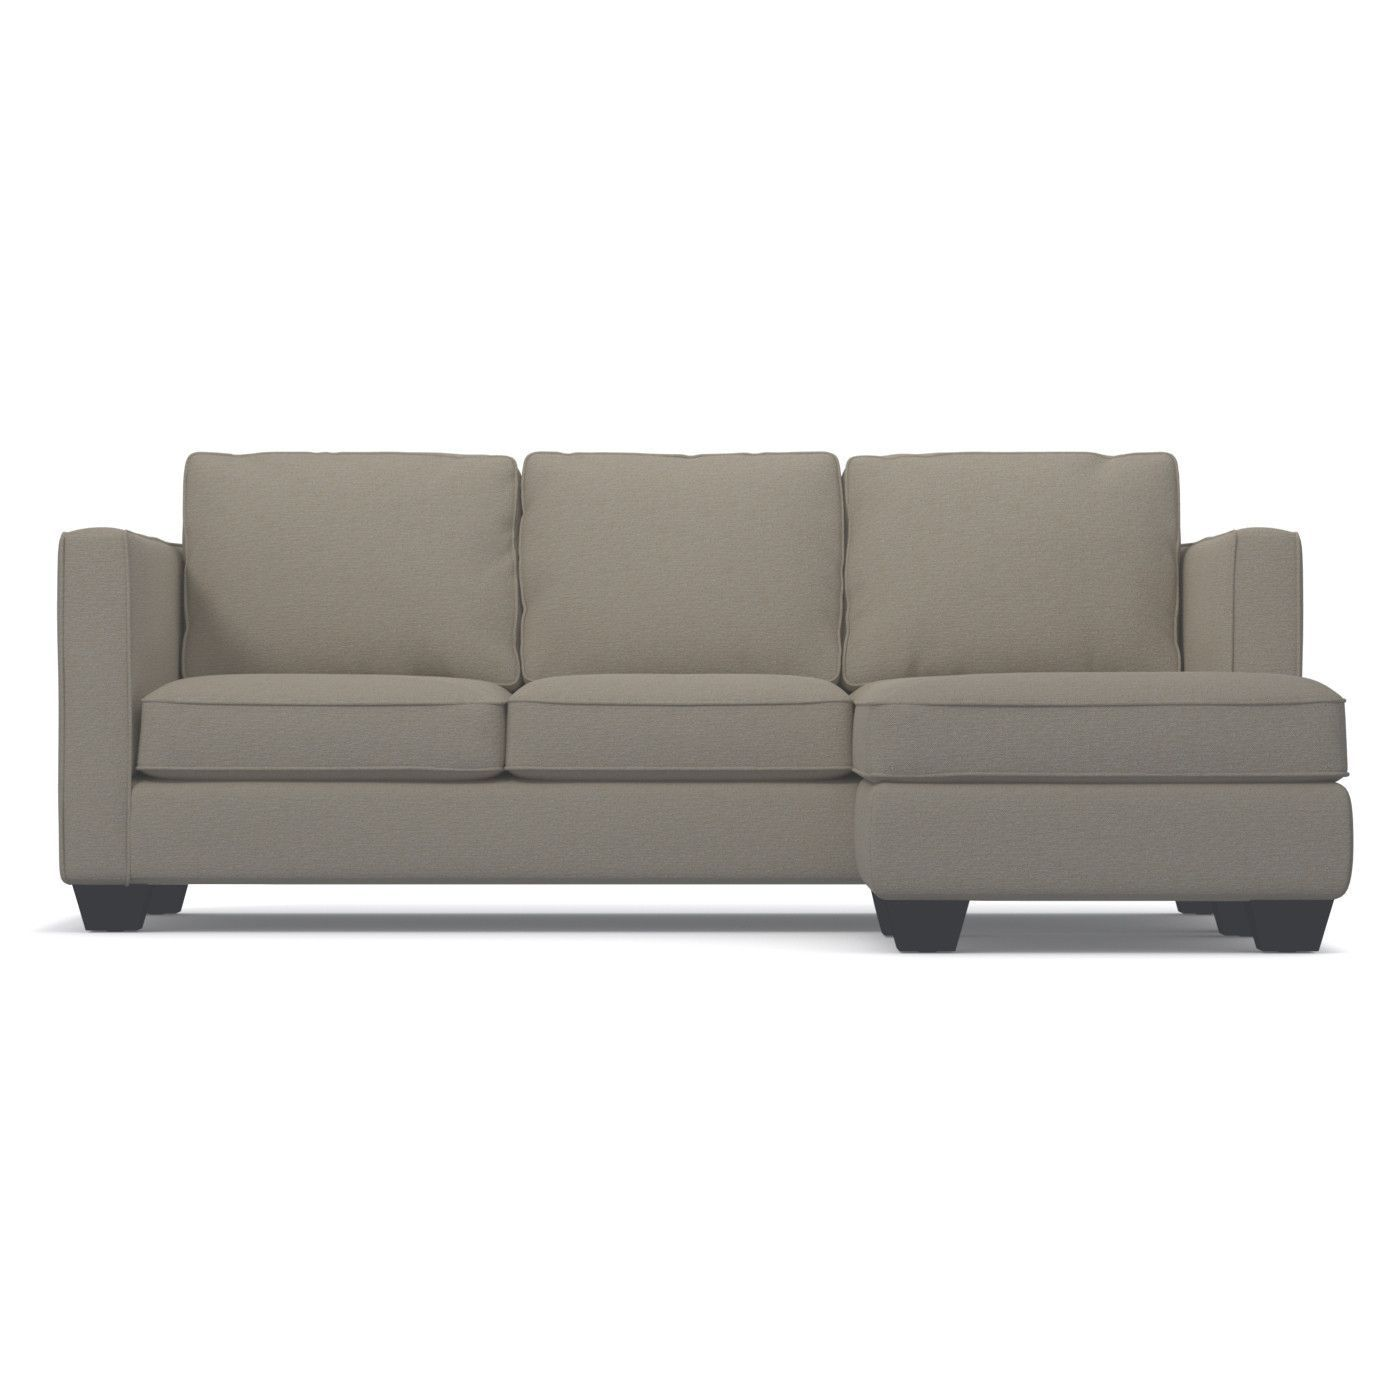 Catalina Reversible Chaise Sofa CHOICE OF FABRICS